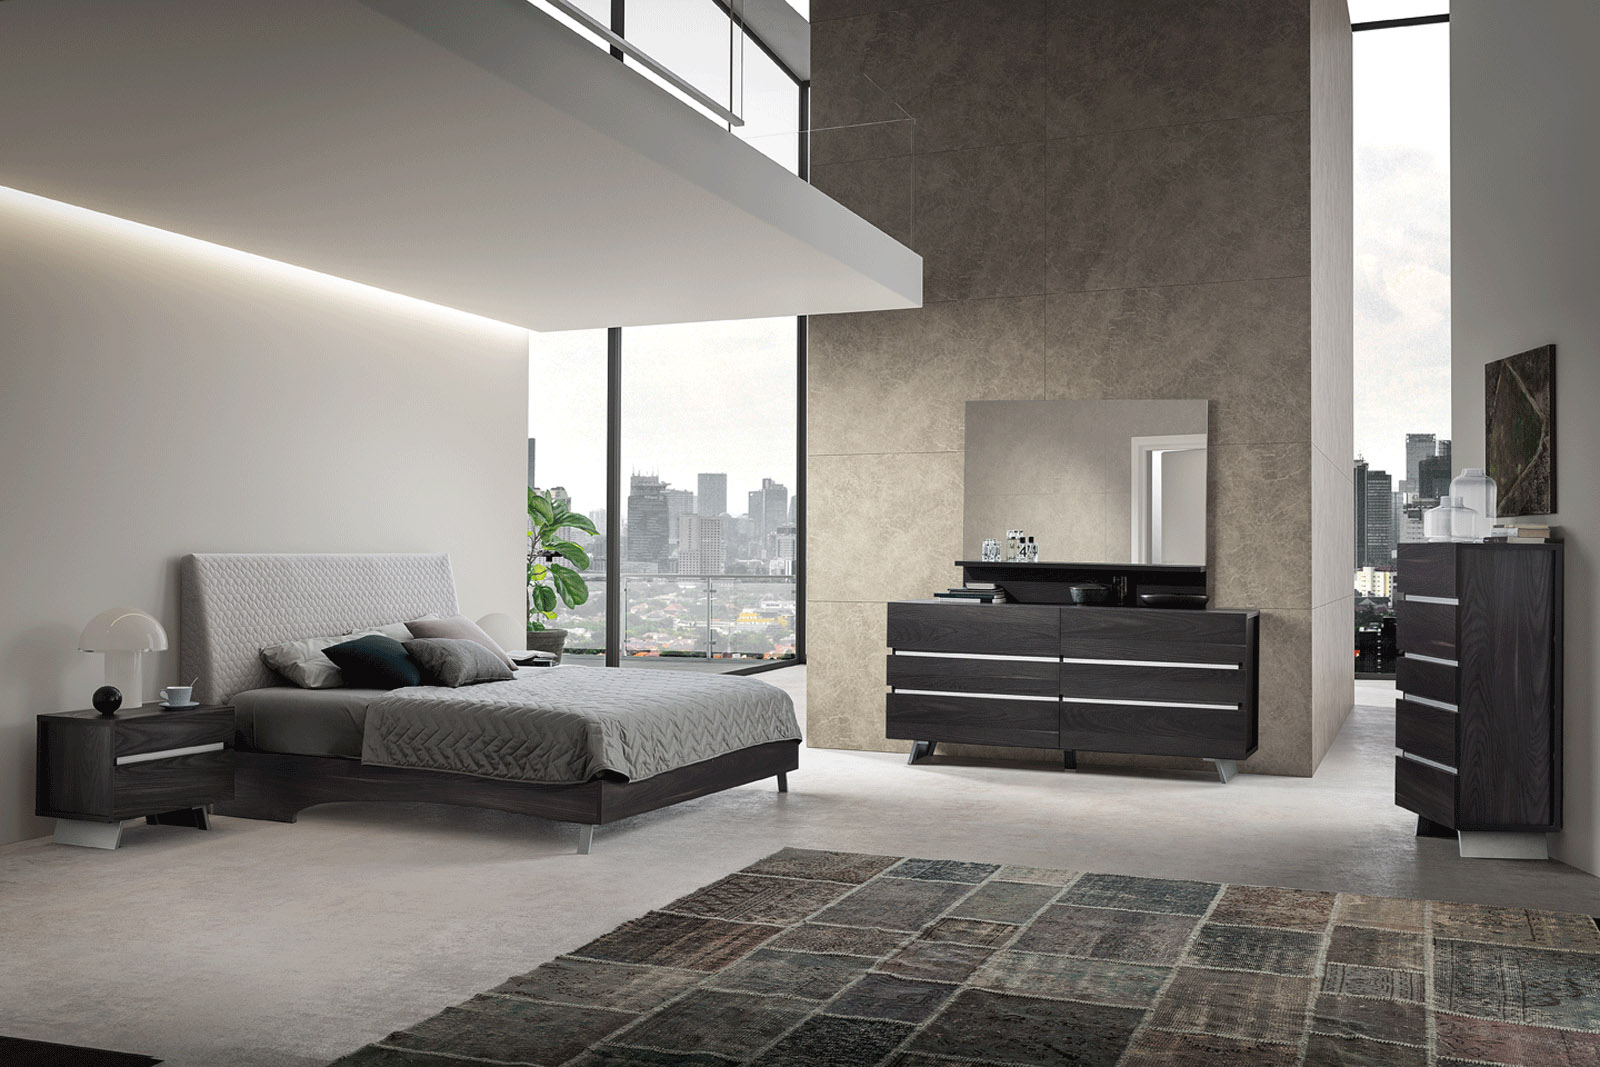 made in italy wood contemporary bedroom design flint 12547 | wood grain brown italian bedroom furniture suite status new star 01